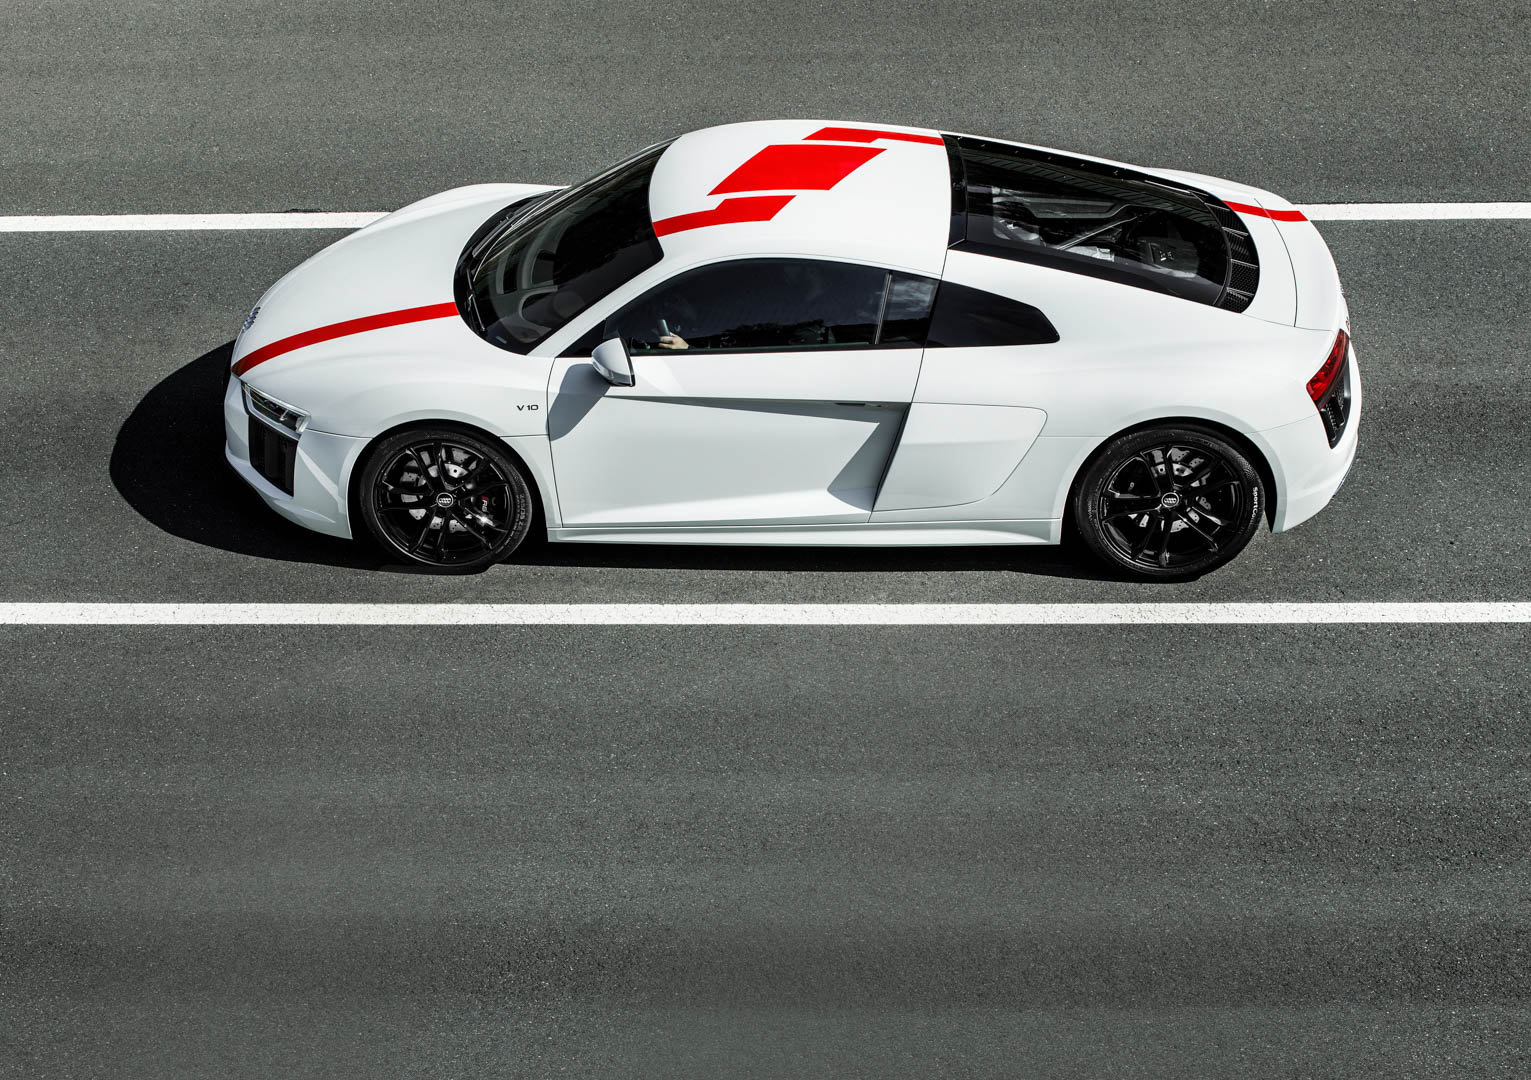 No More Audi R But Performance Cars Will Continue - Audi performance cars